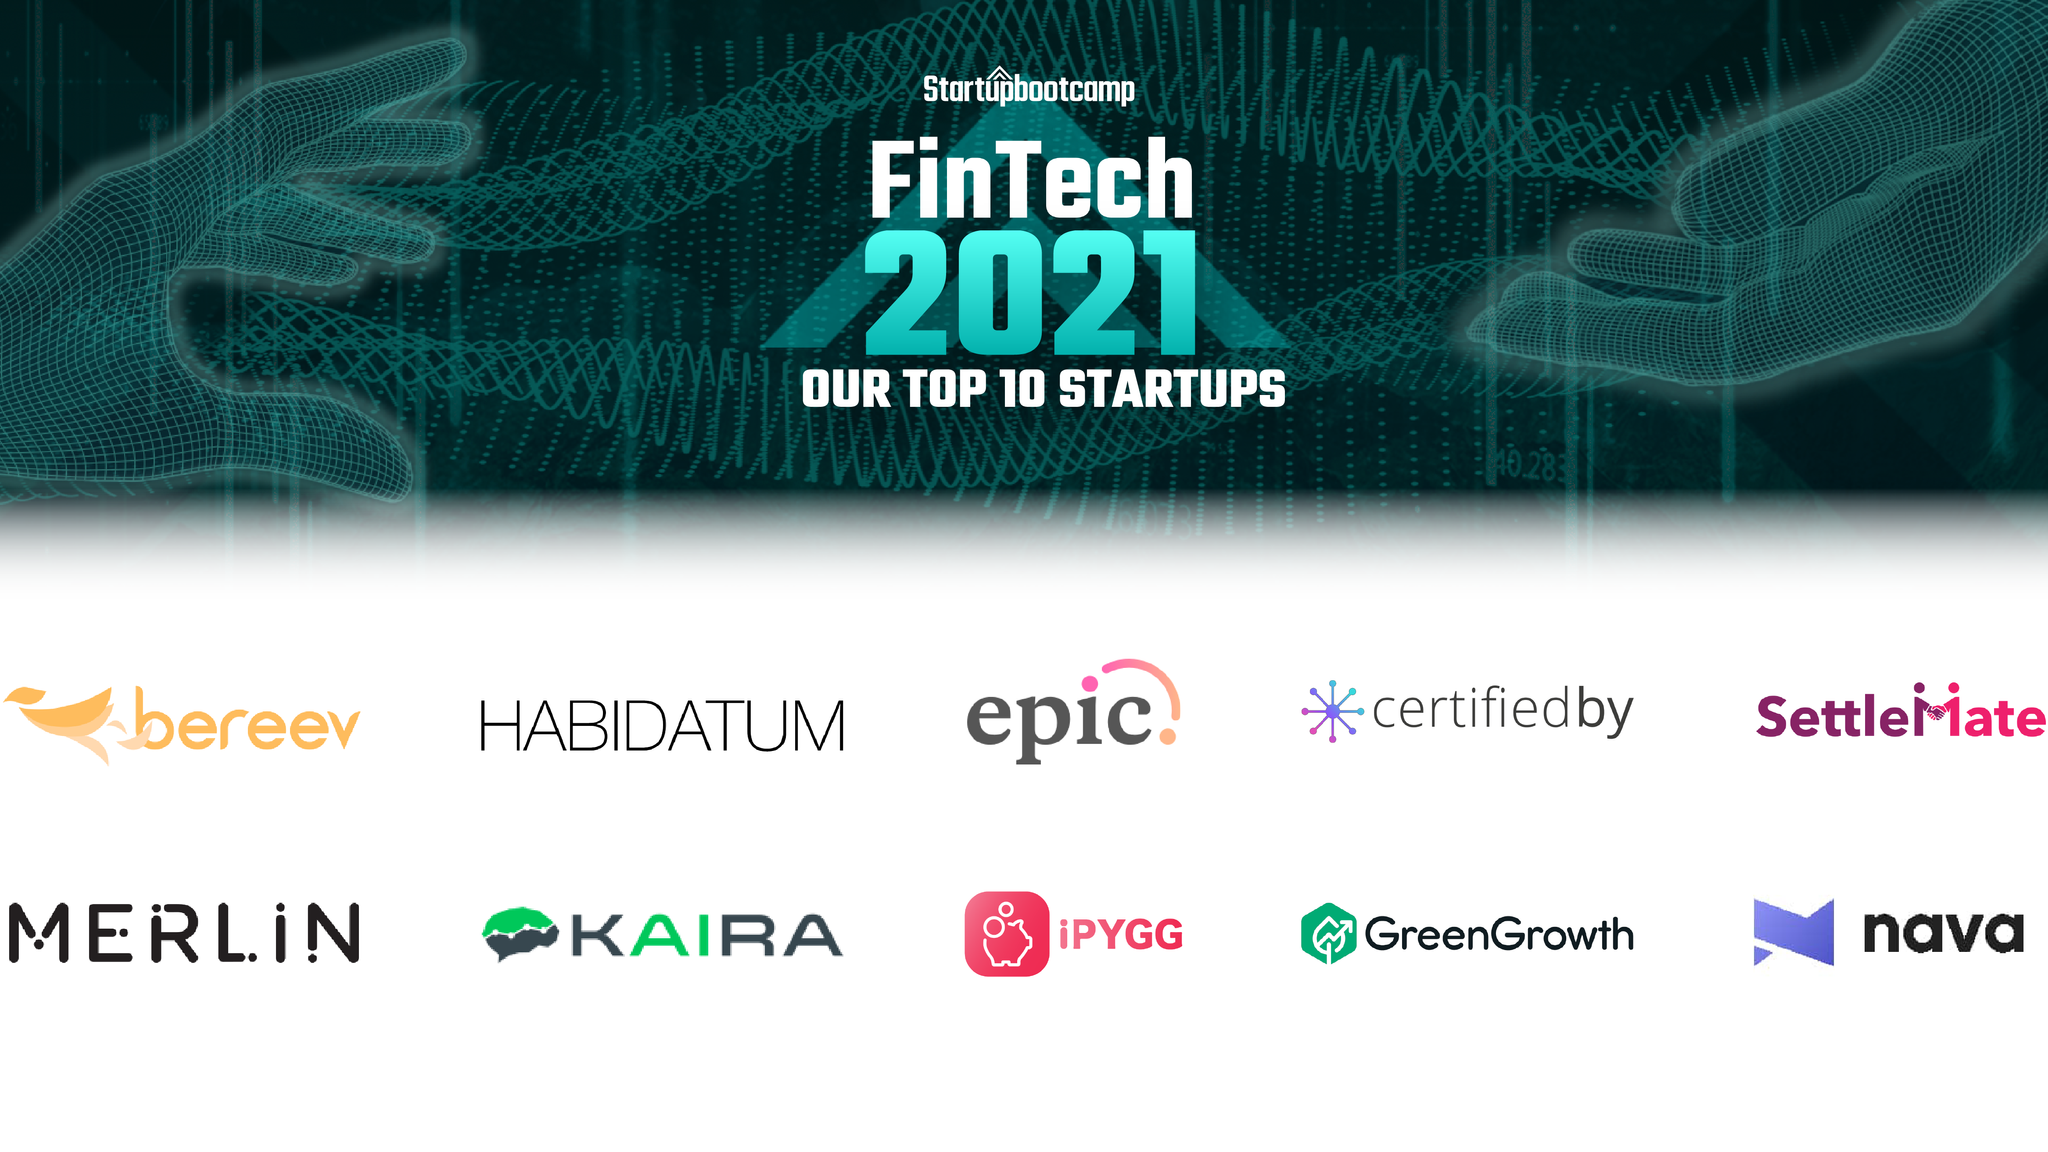 AUSTRALIA'S FINTECH ECOSYSTEM WELCOMES TEN NEW STARTUPS AND SCALE UPS.